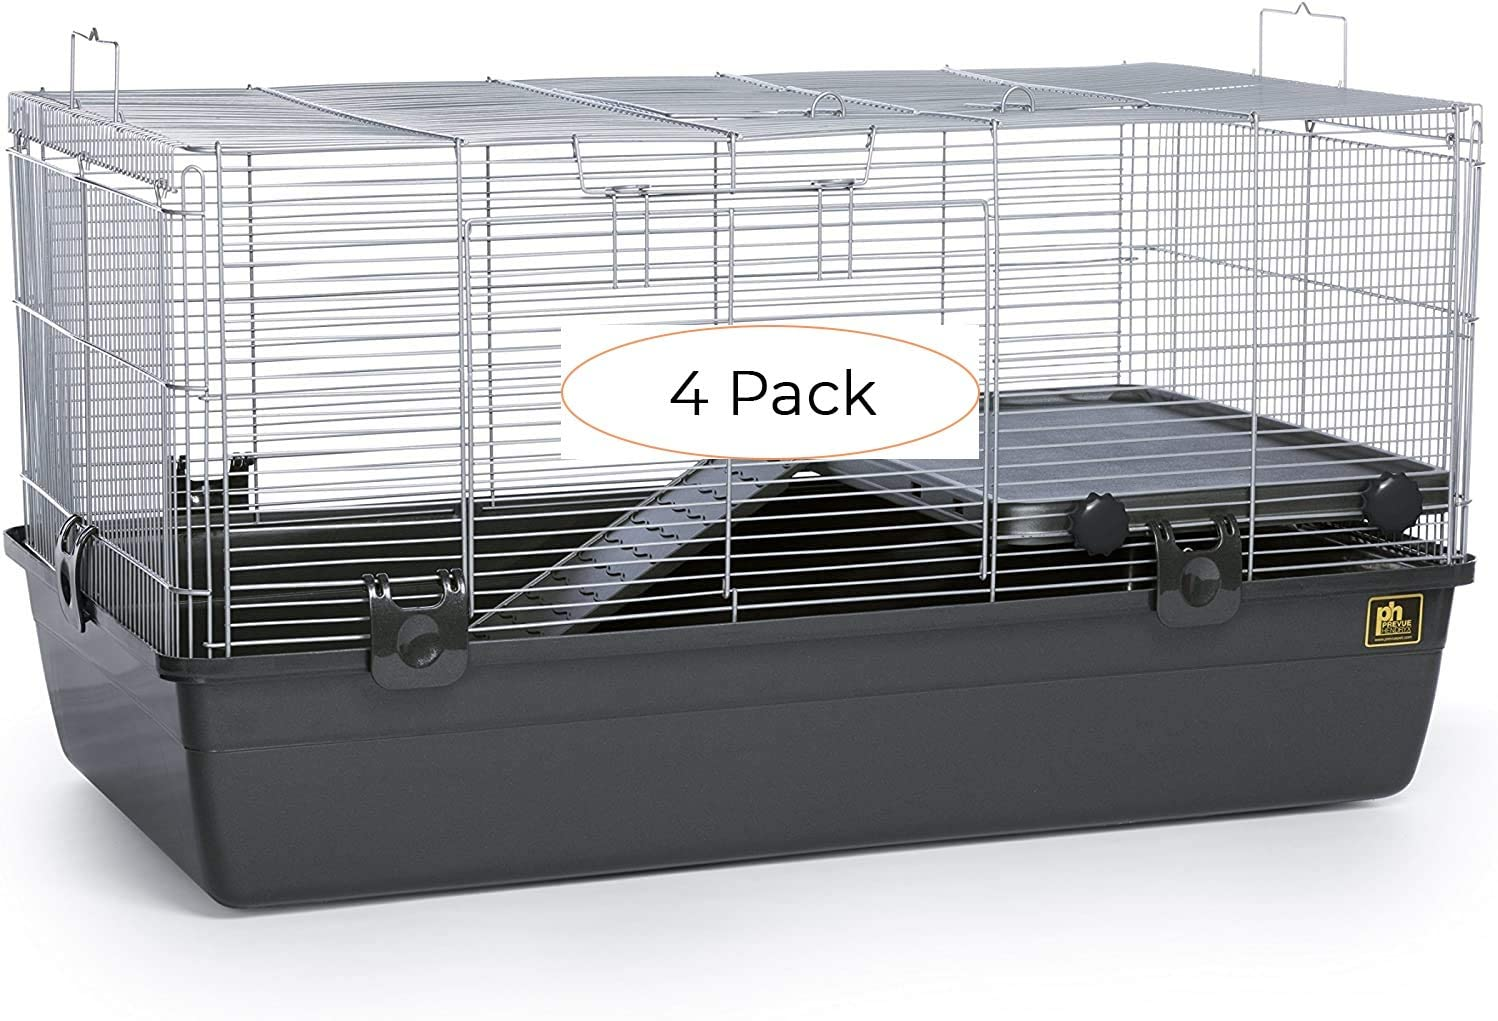 Prevue Pet Products 528 Universal Small Animal Home, Dark Gray (Four Расk)